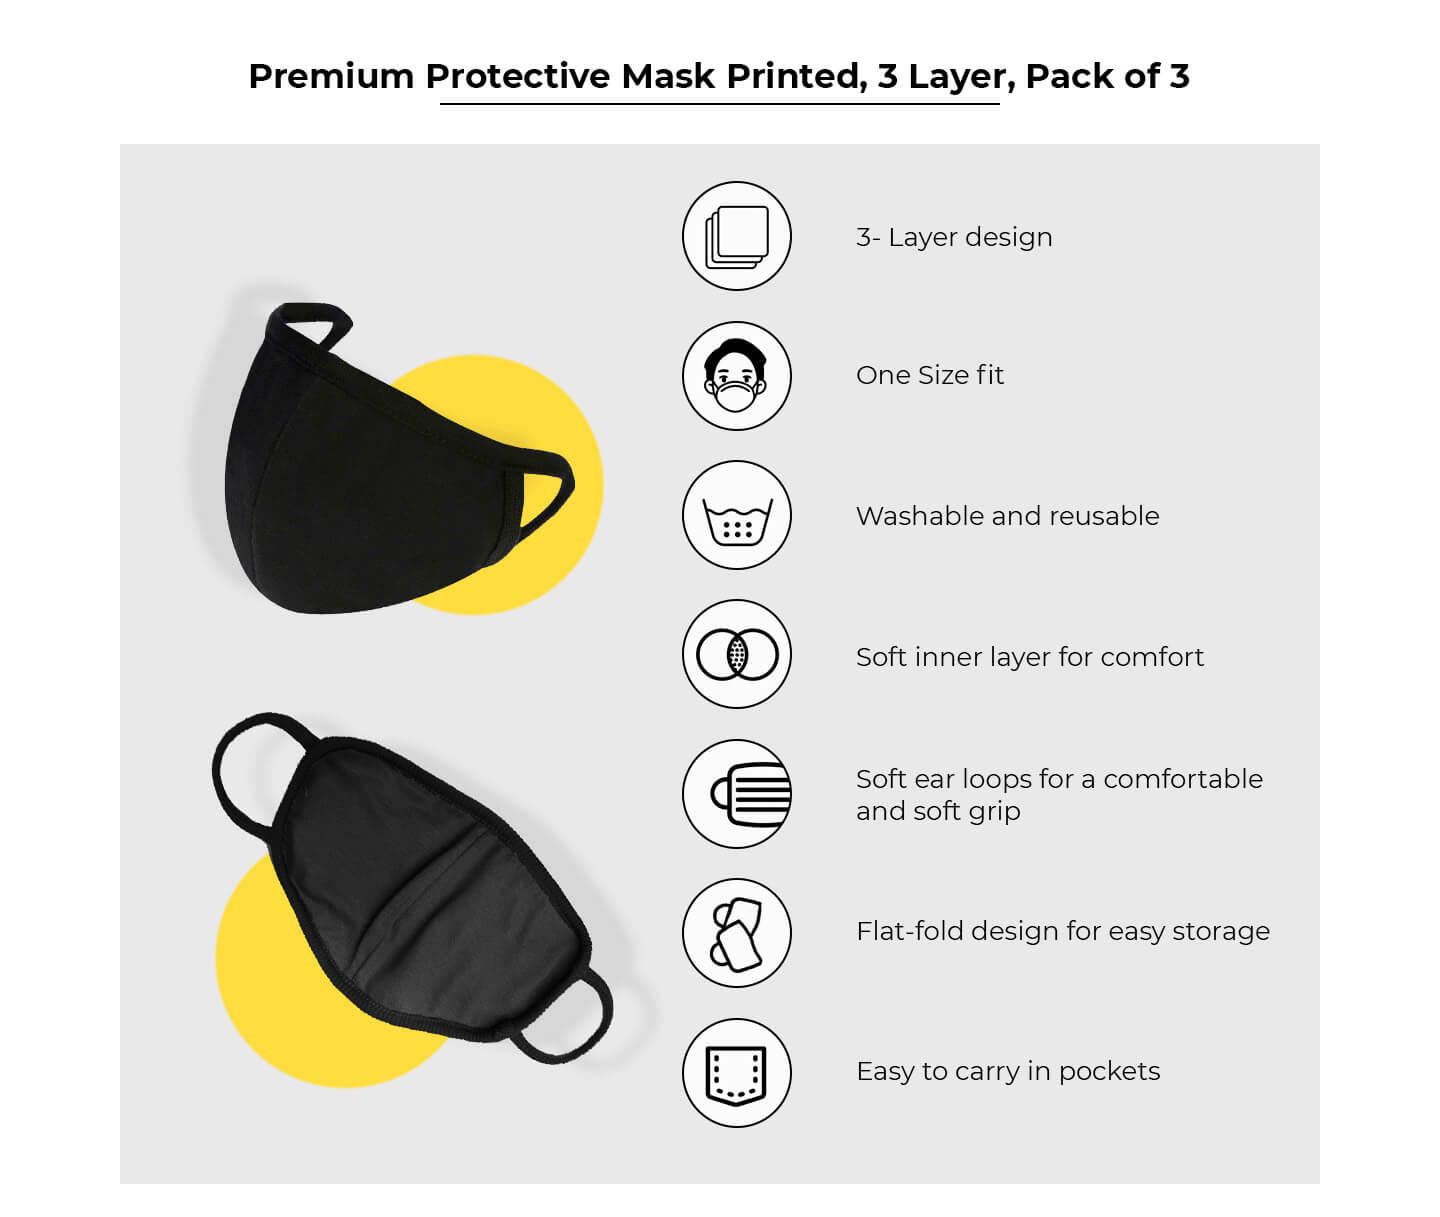 2-Layer Premium Printed Mask - Pack of 3 (Memphis, Strawberry,Lipstick and heels) Description Image Website 0@Bewakoof.com